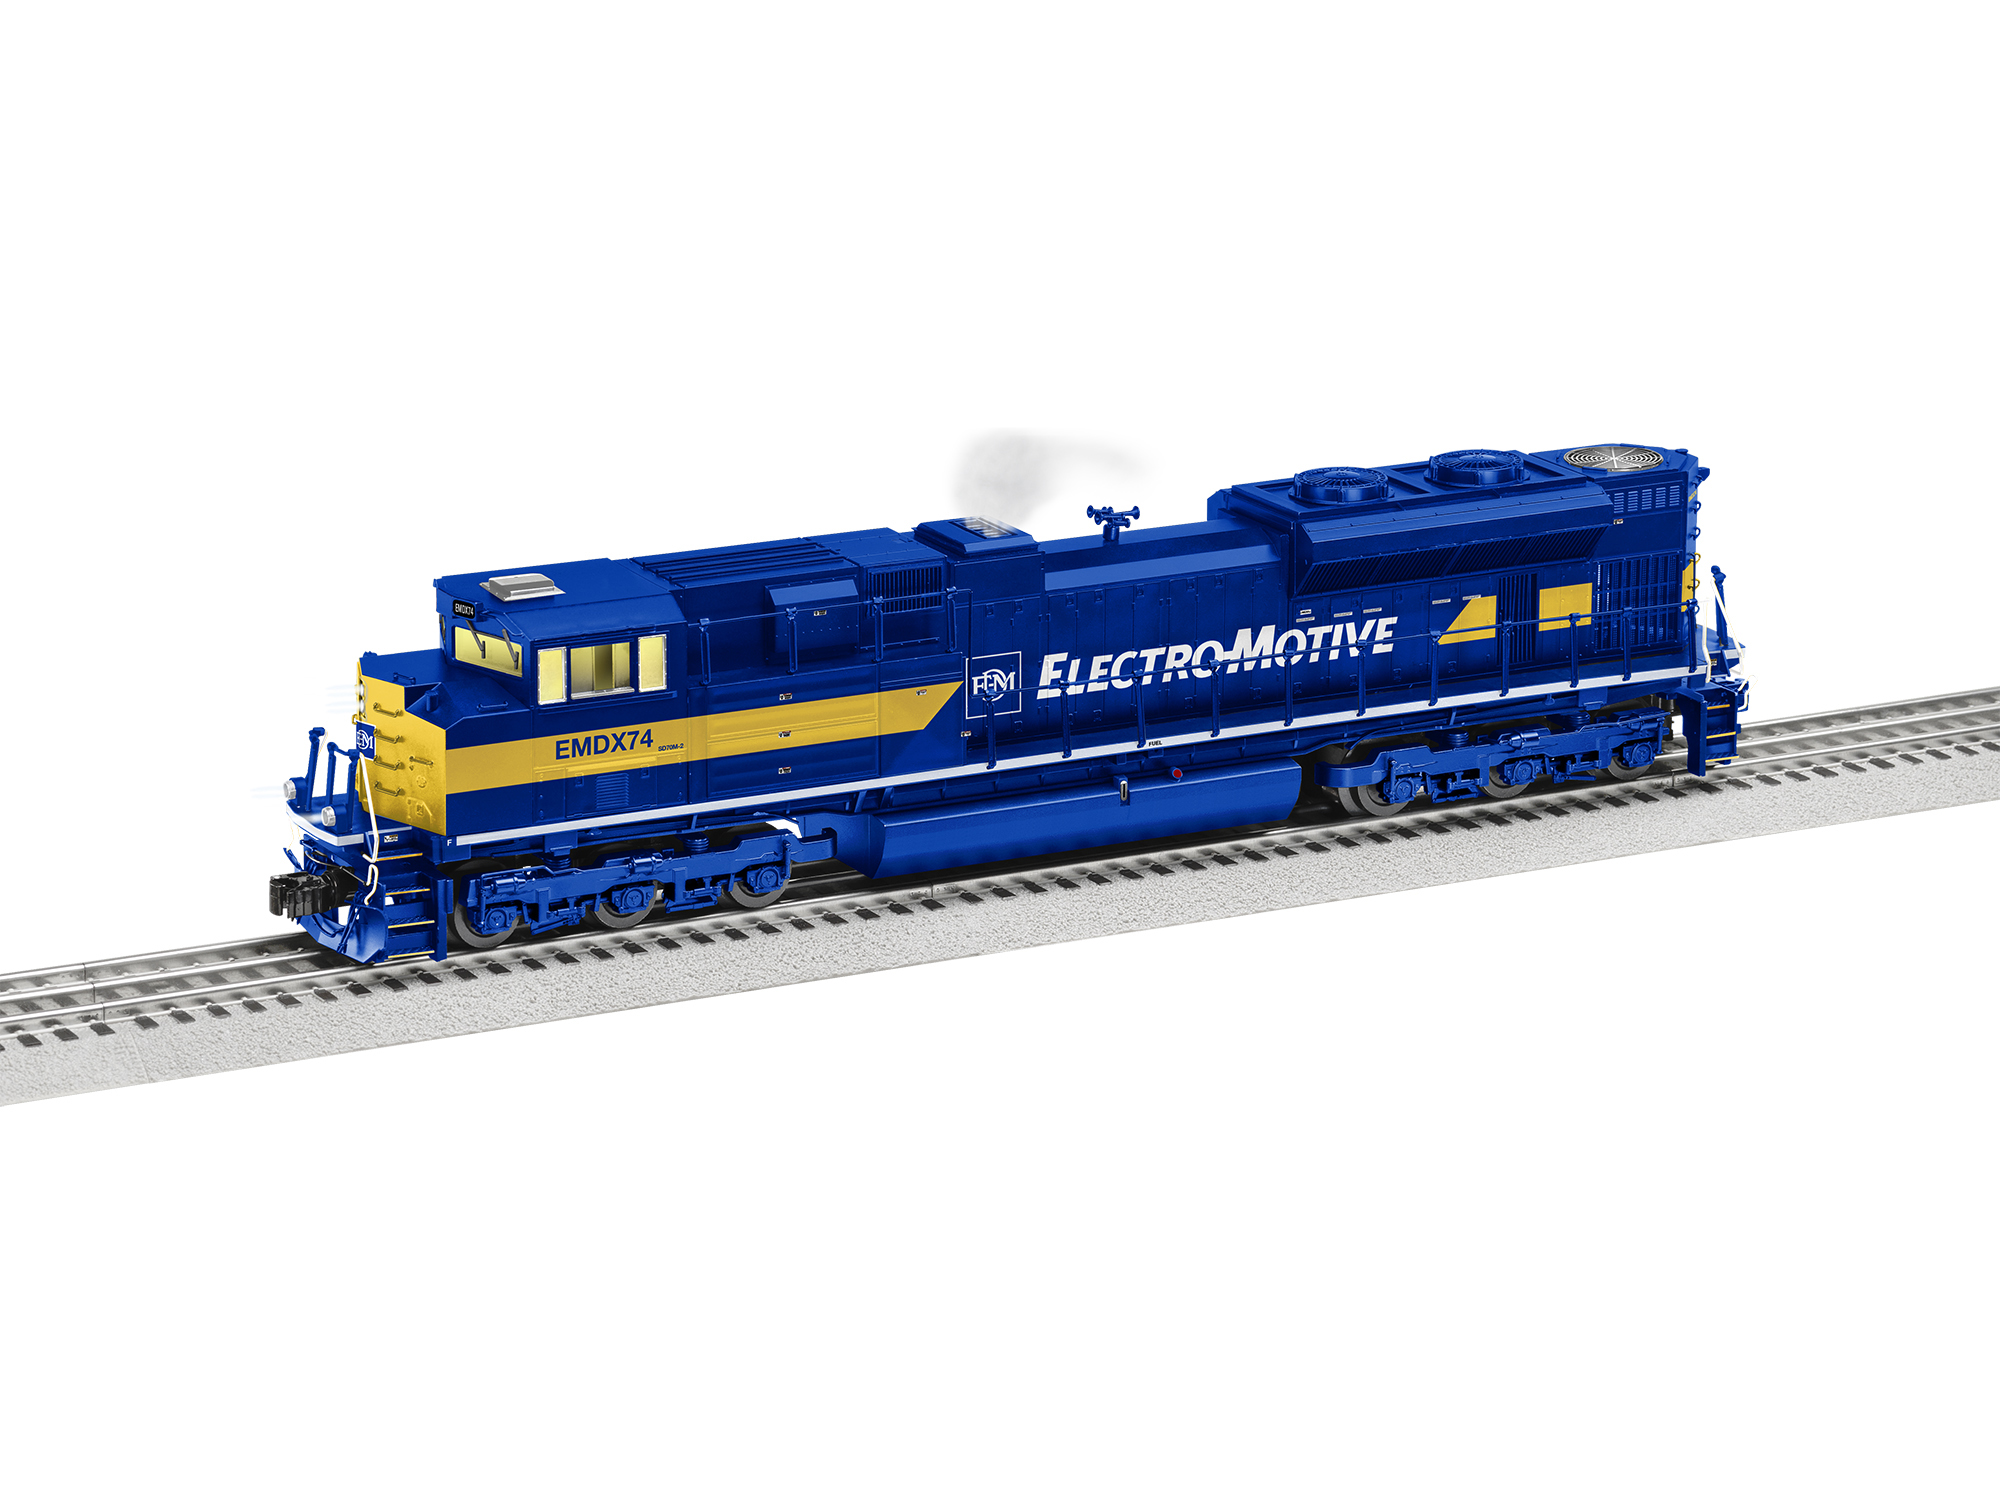 Lionel 2033191 O EMD SD70M-2 3-Rail Legacy Sound and Control Electro-Motive 74 434-2033191